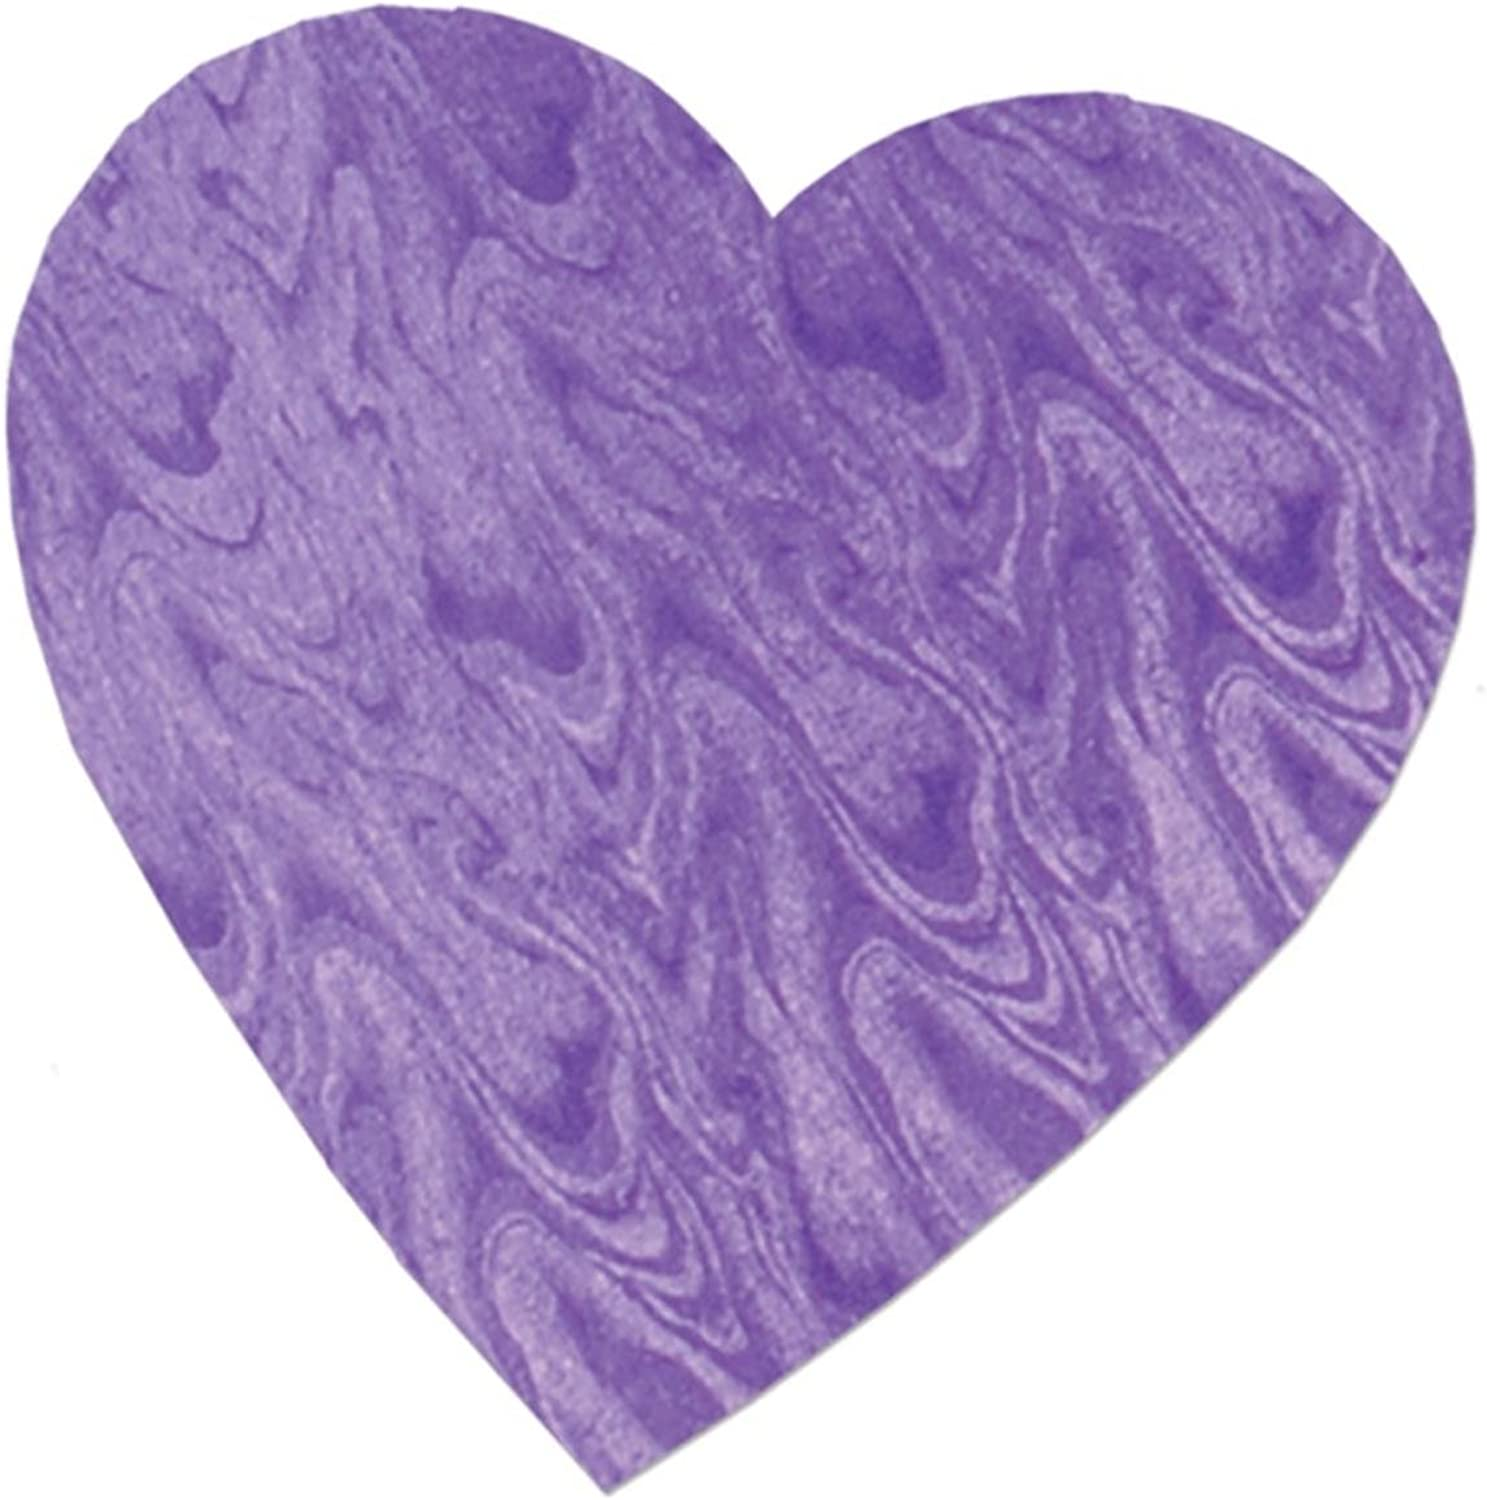 Party Central Pack of 36 Embossed Purple Foil Heart Cutout Valentine Decorations 8.5